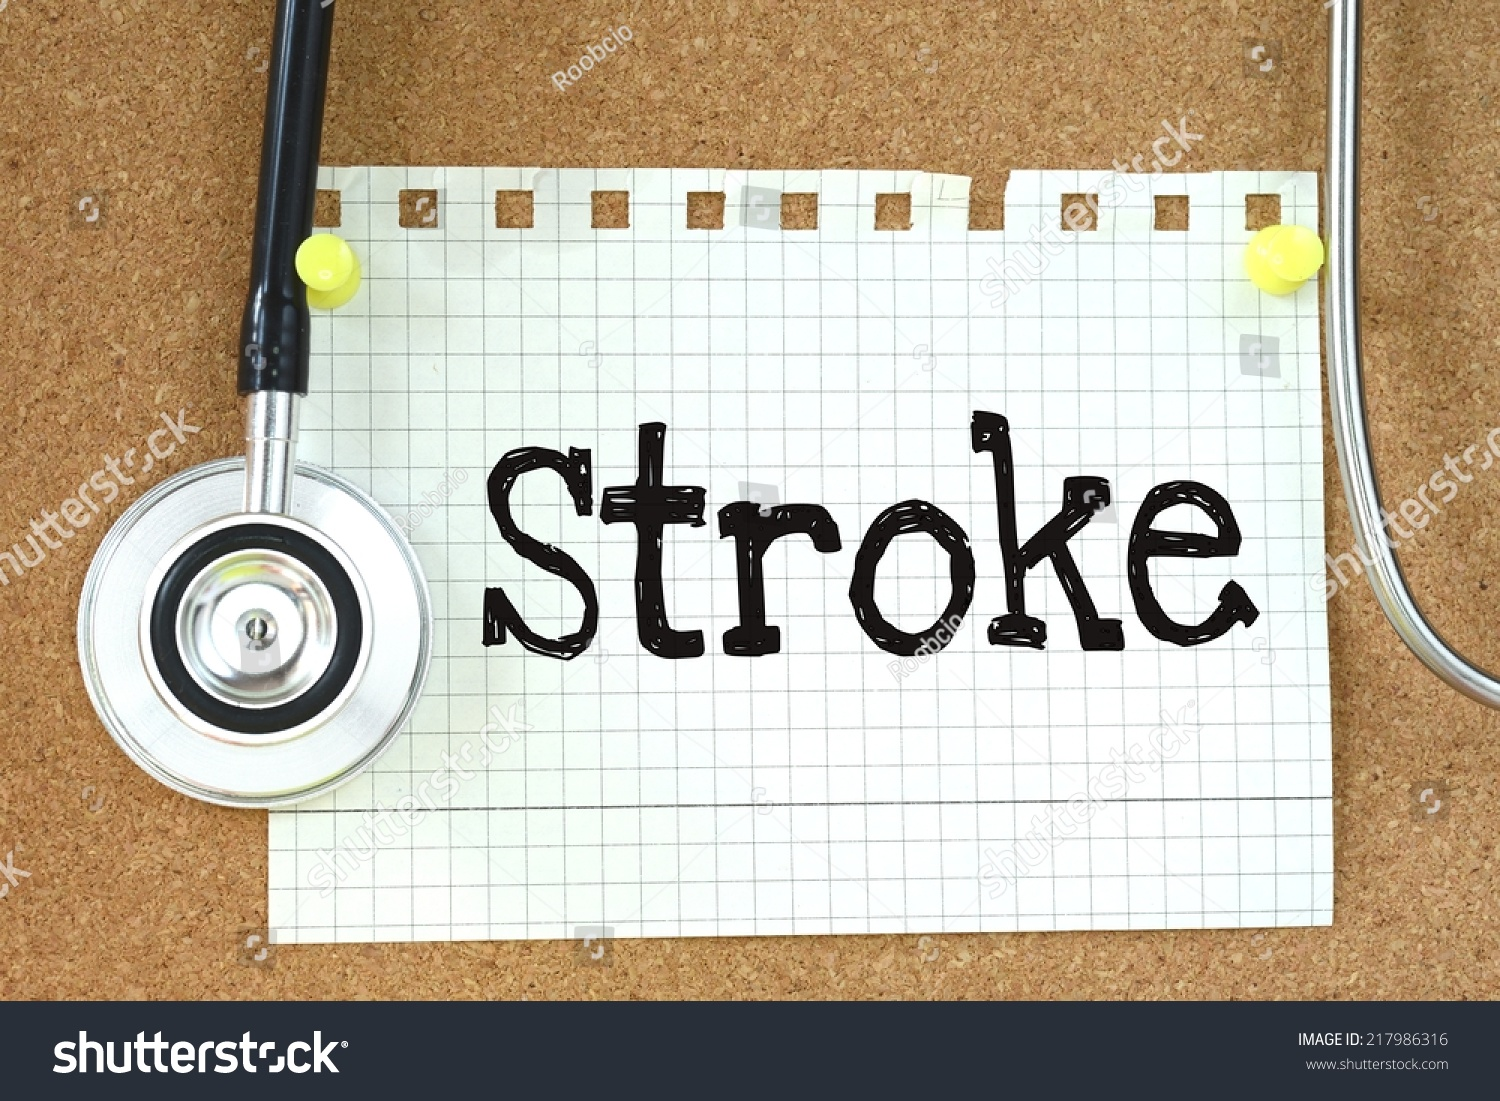 stroke risk paper Oral contraceptives increase the risk of ischemic stroke, but this risk is very small among women who do not have other stroke risk factors, according to a jan 3, 2018 paper in the journal medlink neurology by loyola medicine.